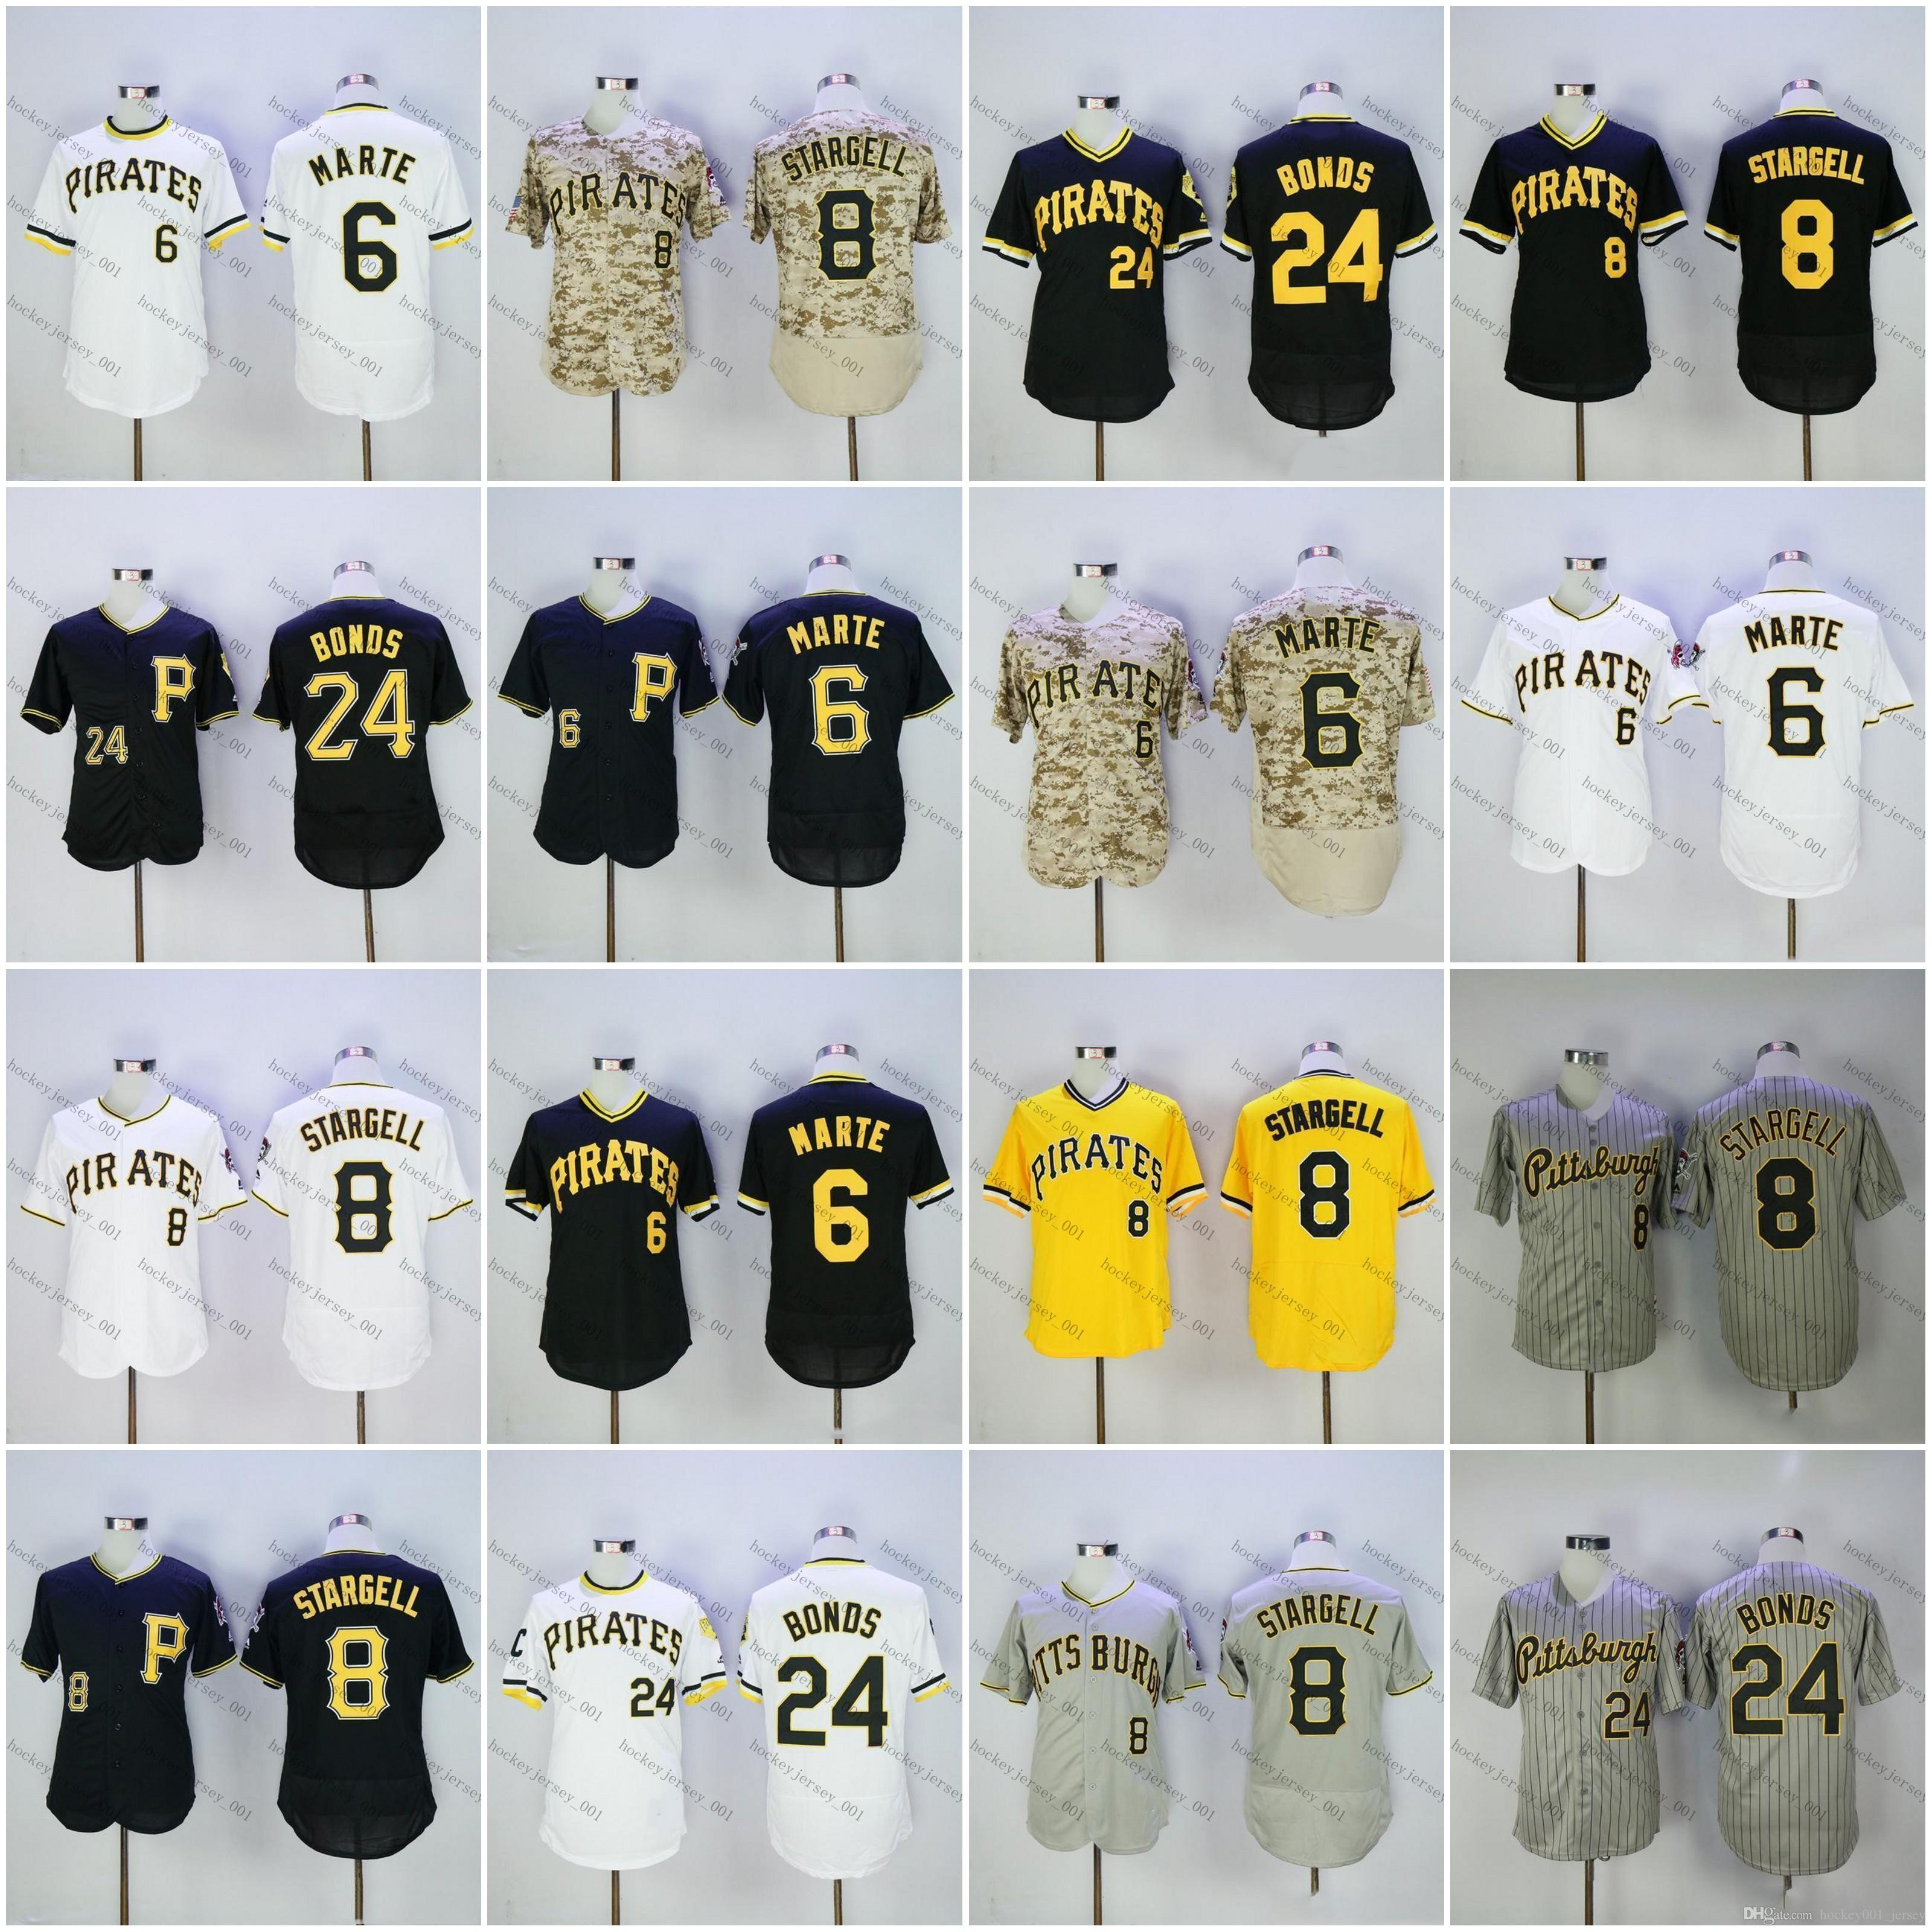 8c74ed1ee 2019 Custom Pirates Jersey 24 Barry Bonds 8 Willie Stargell 6 Starling  Marte Pittsburgh Jersey Stitched Baseball Jersey Stitched From  Hockey001 jersey